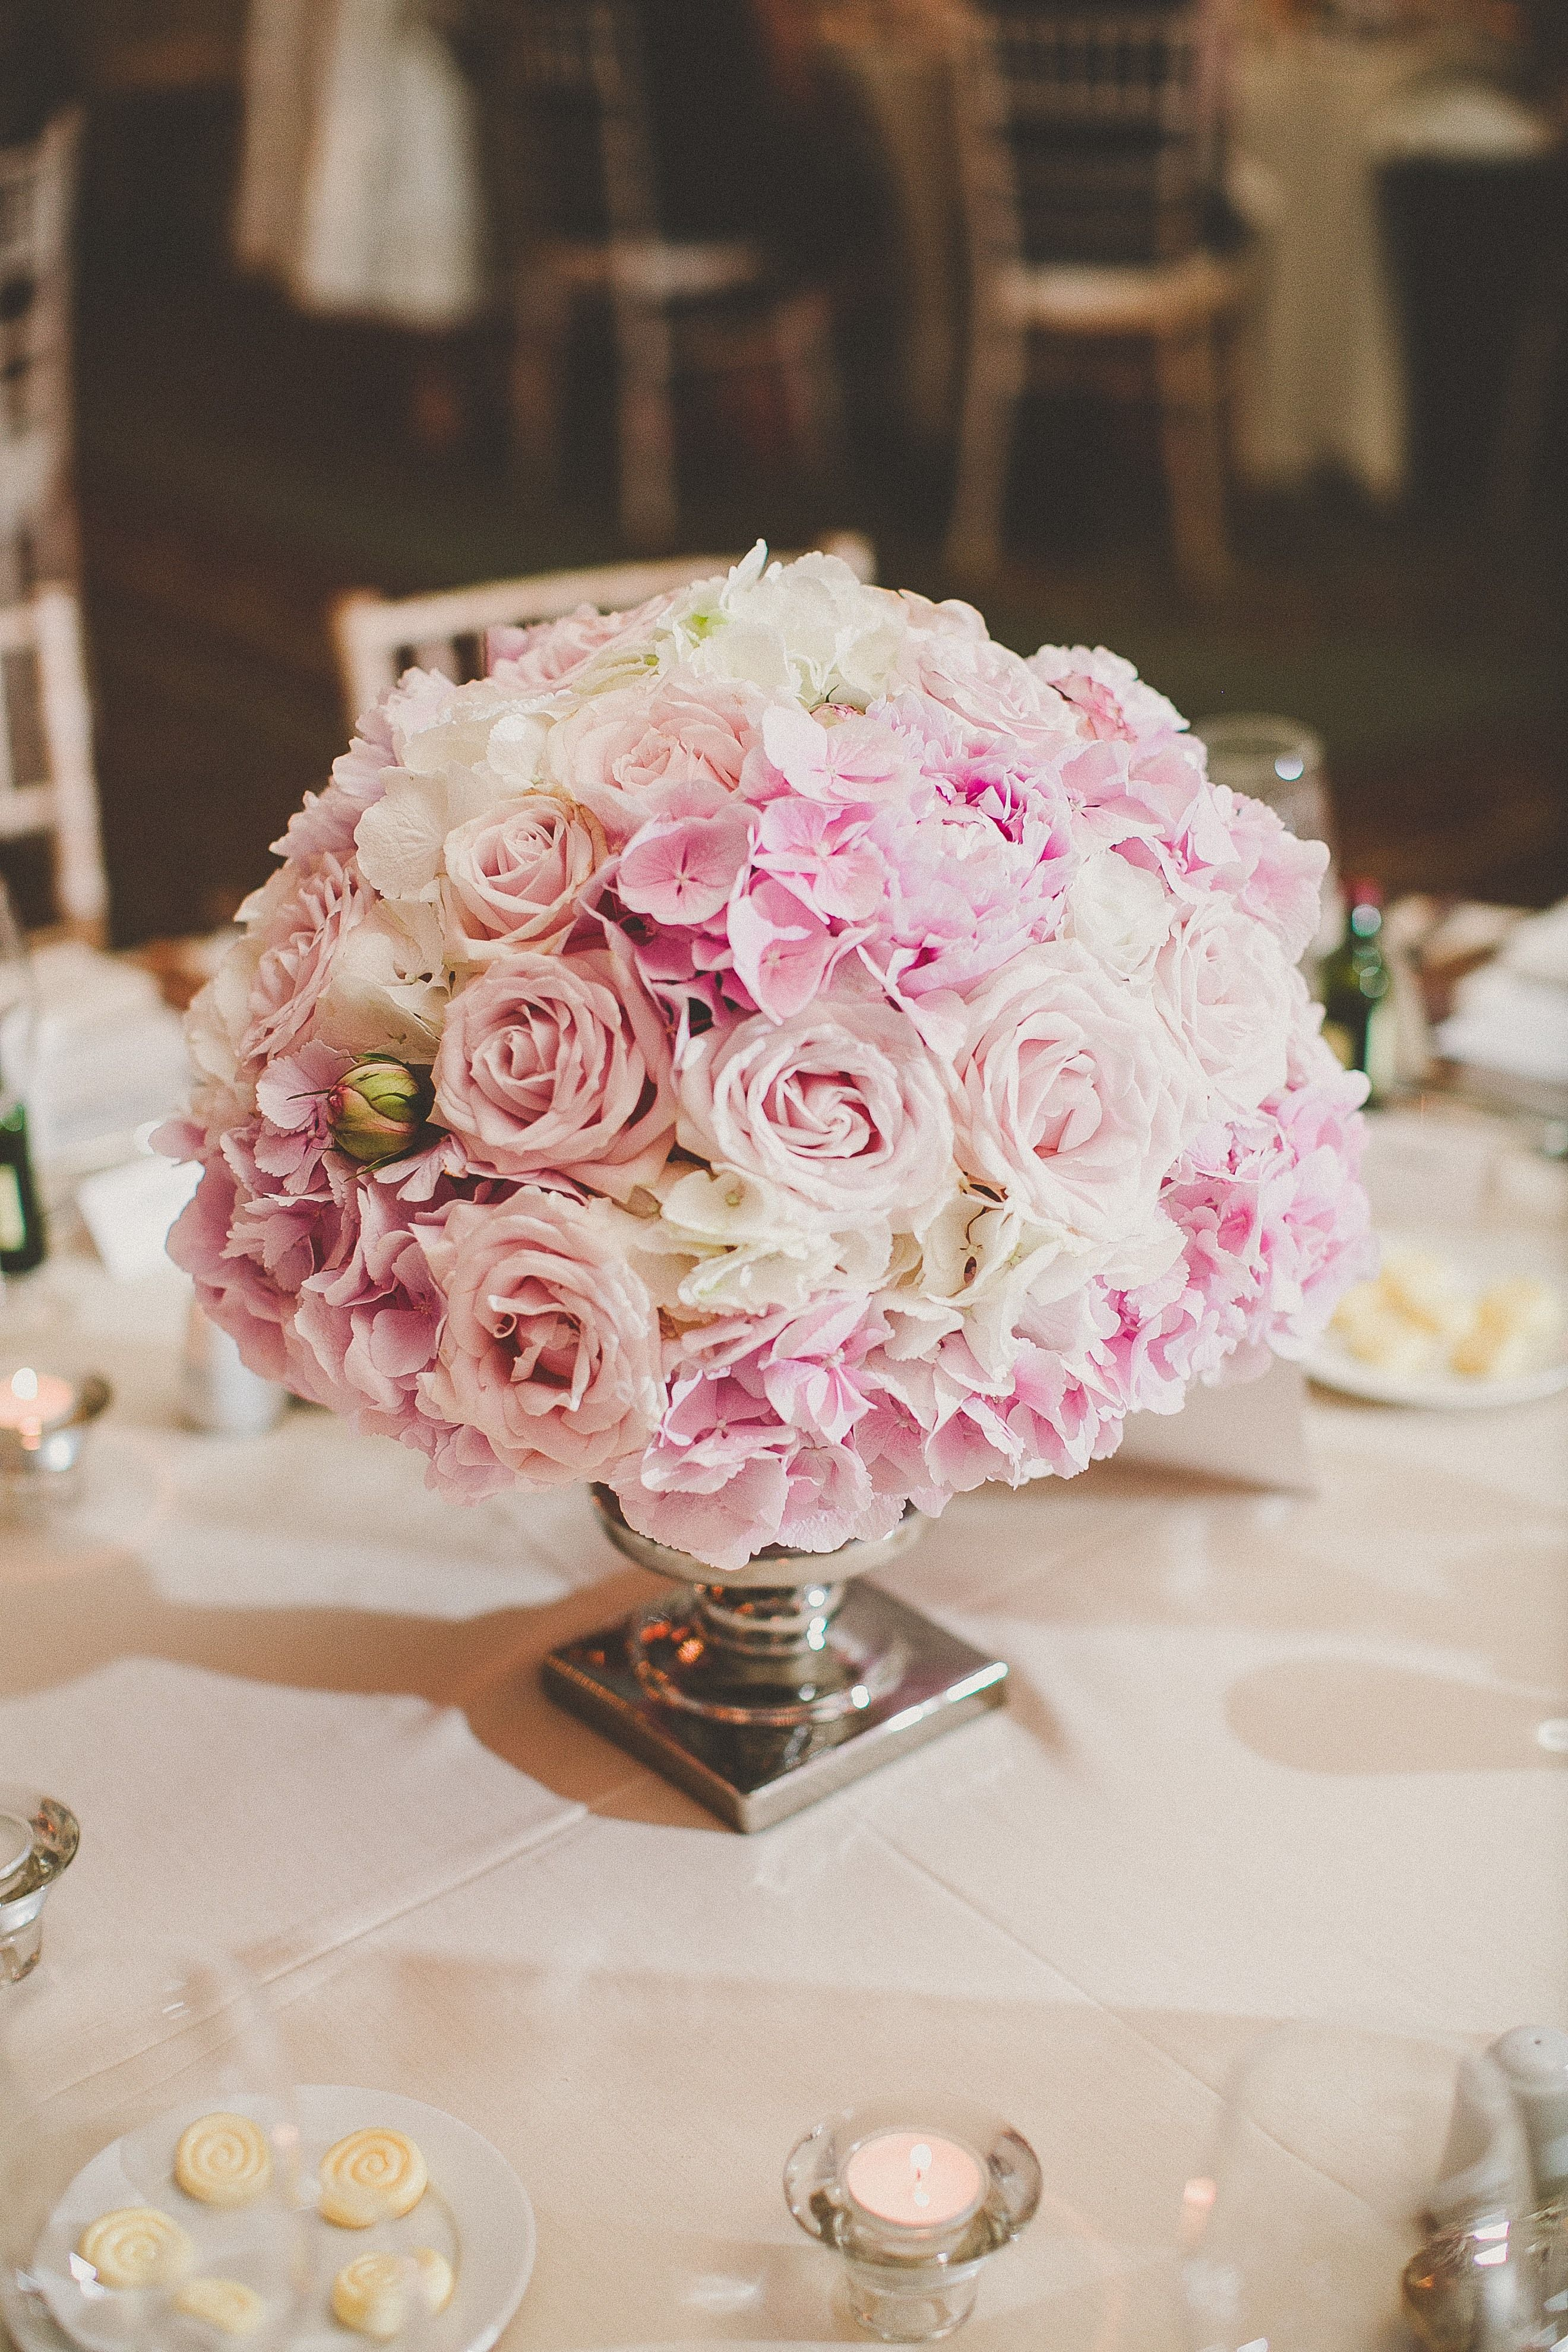 Blush pinks white low table centrepiece pink